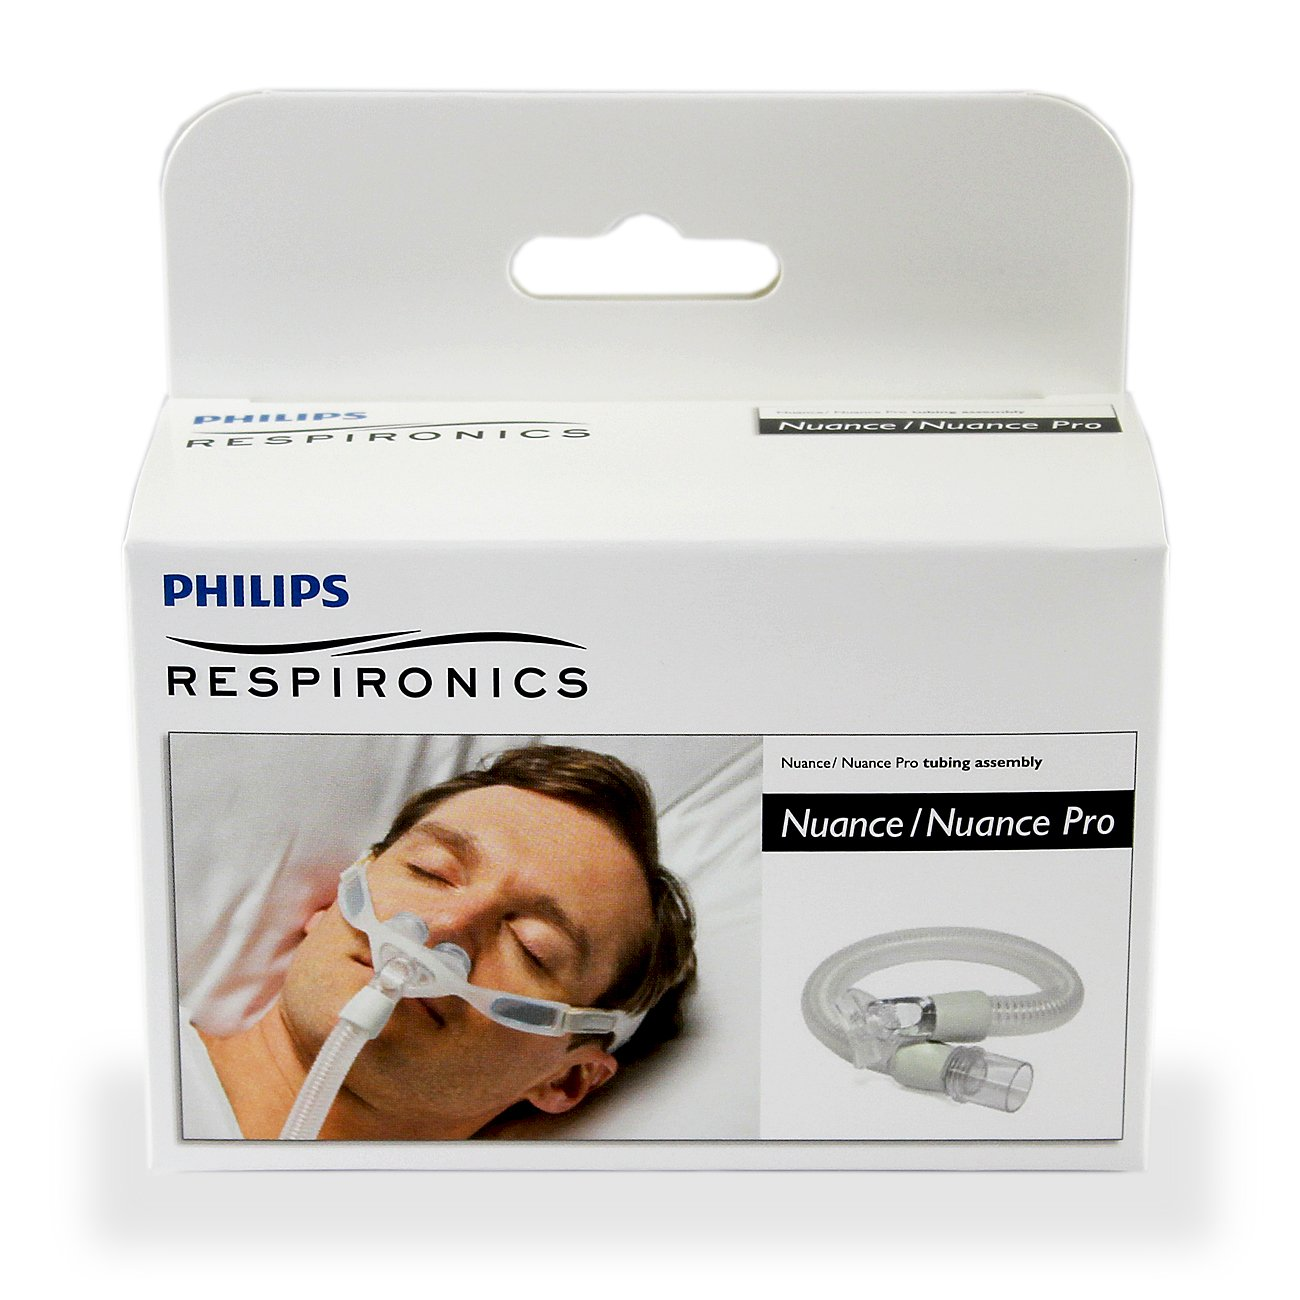 7. Philips Respironic CPAP Mask